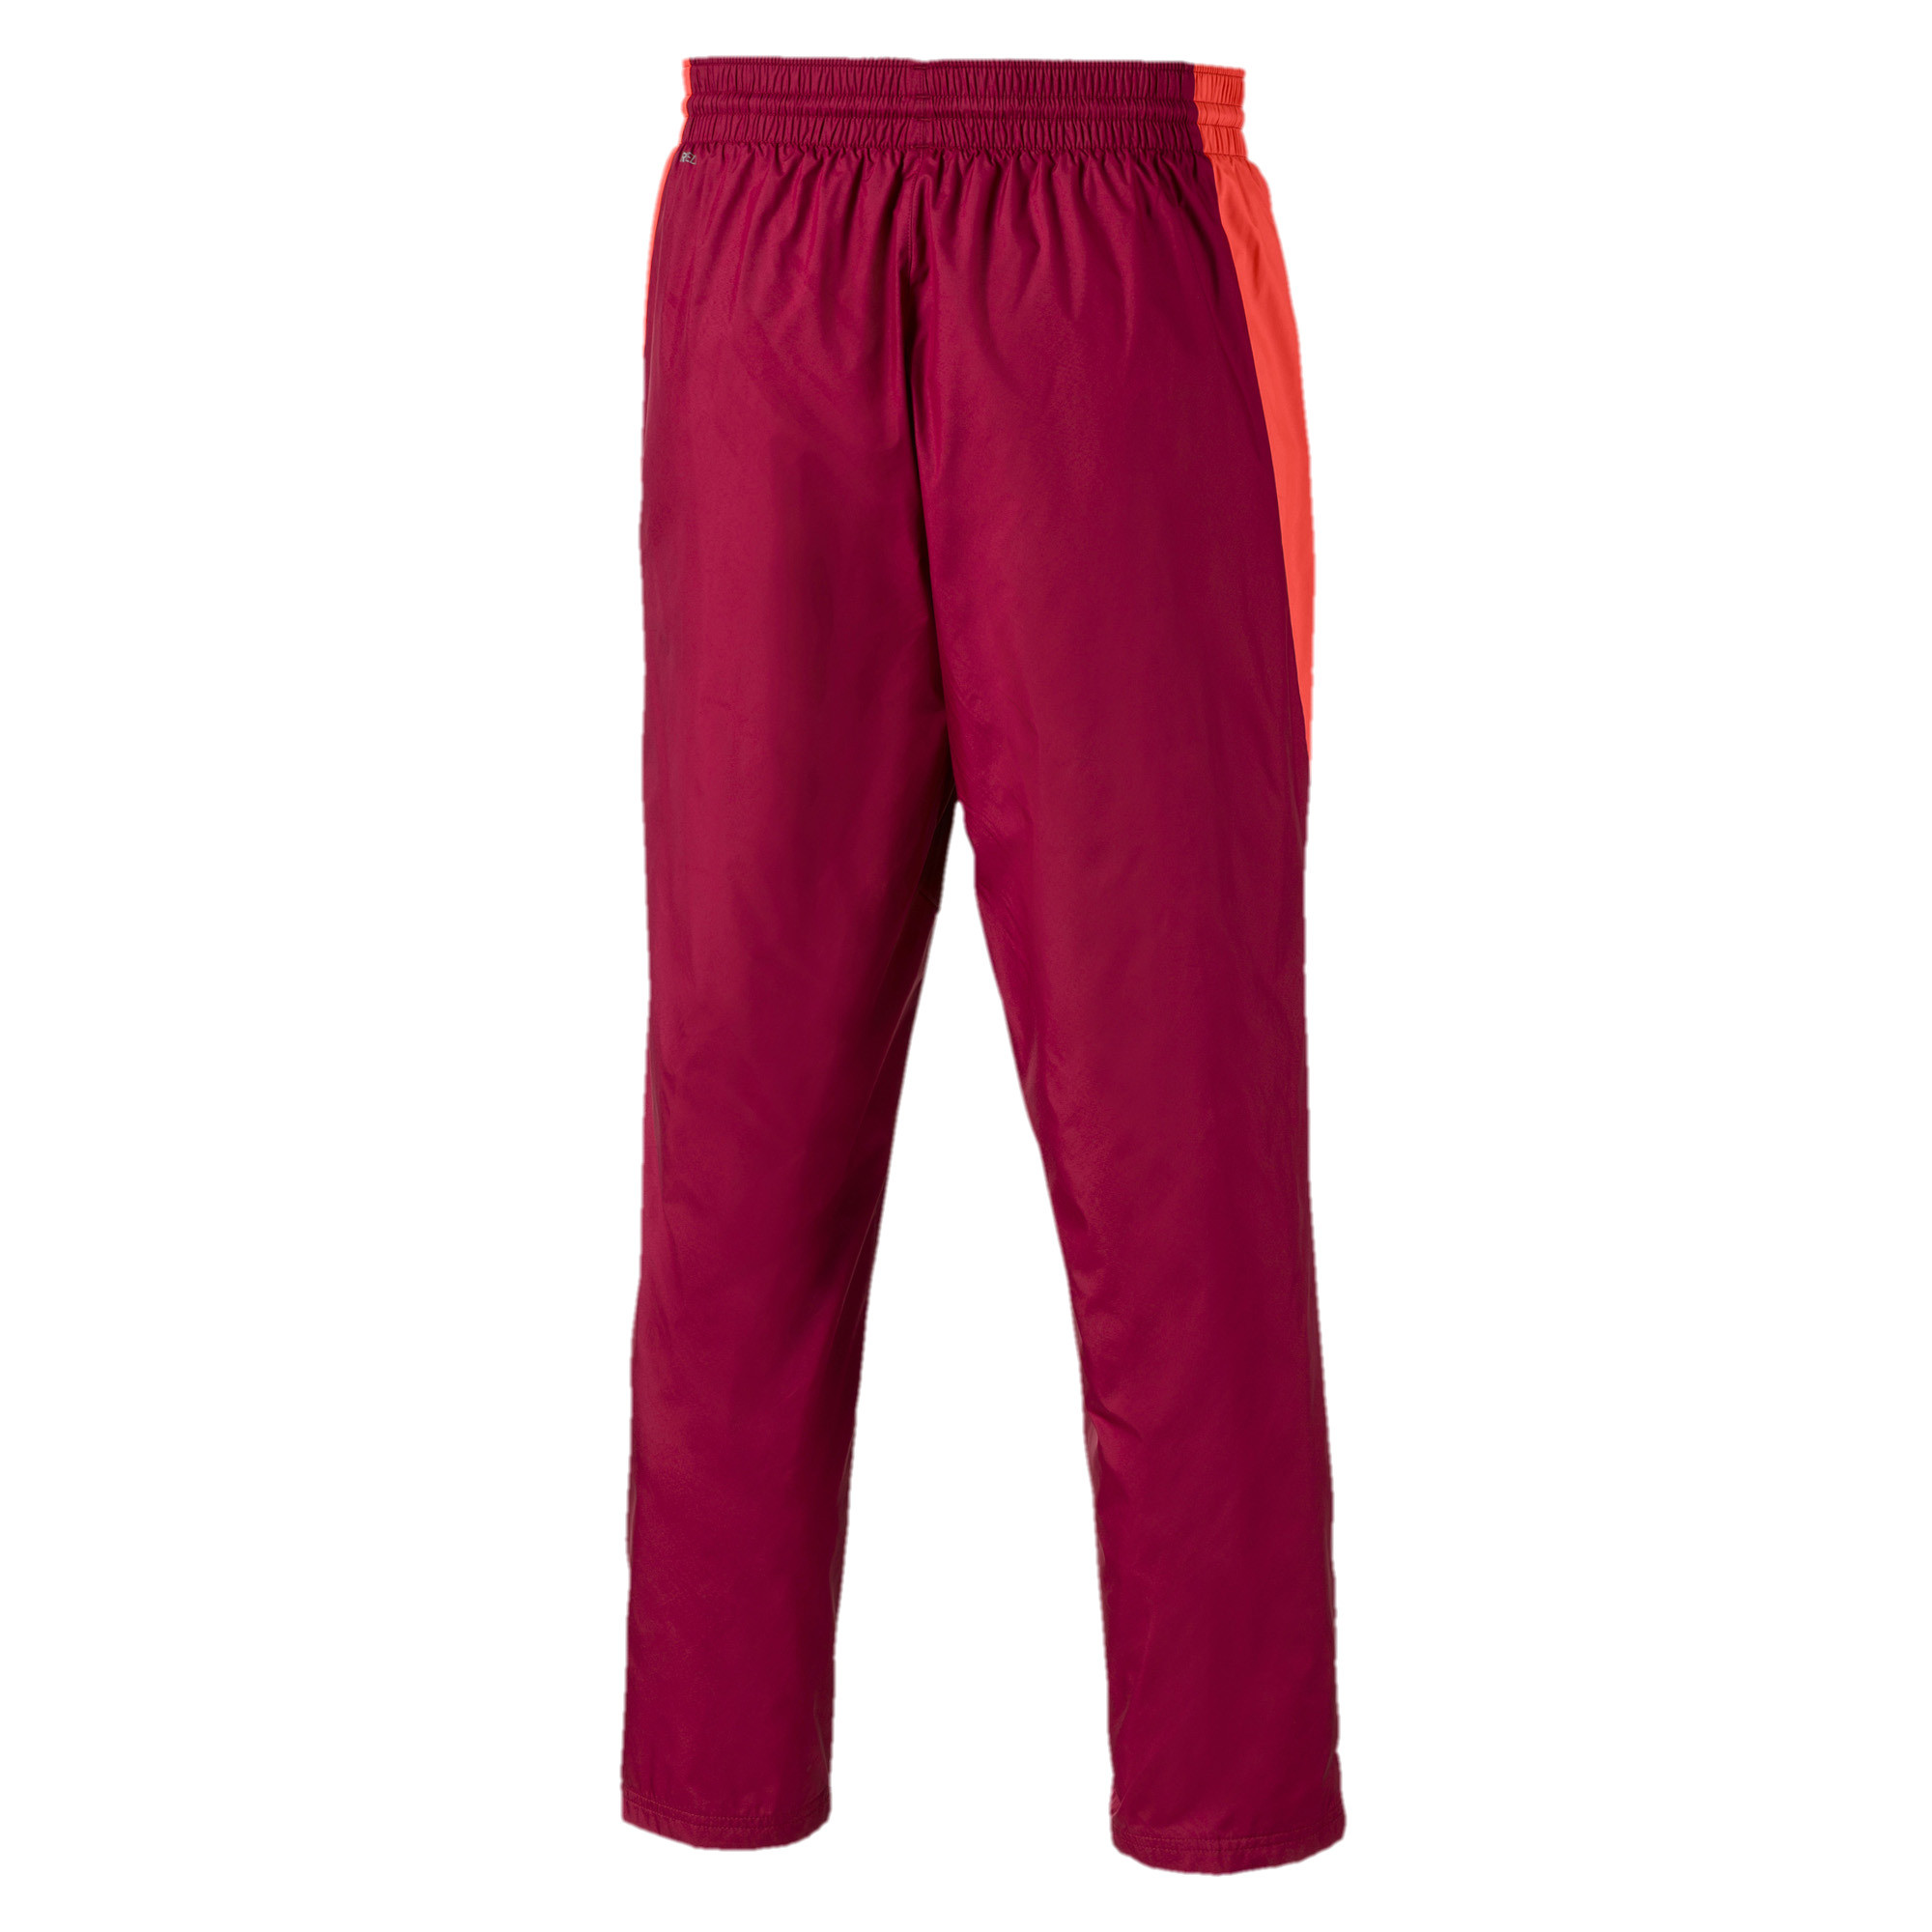 PUMA-Reactive-Men-039-s-Woven-Pants-Men-Woven-Pants-Training miniatura 8